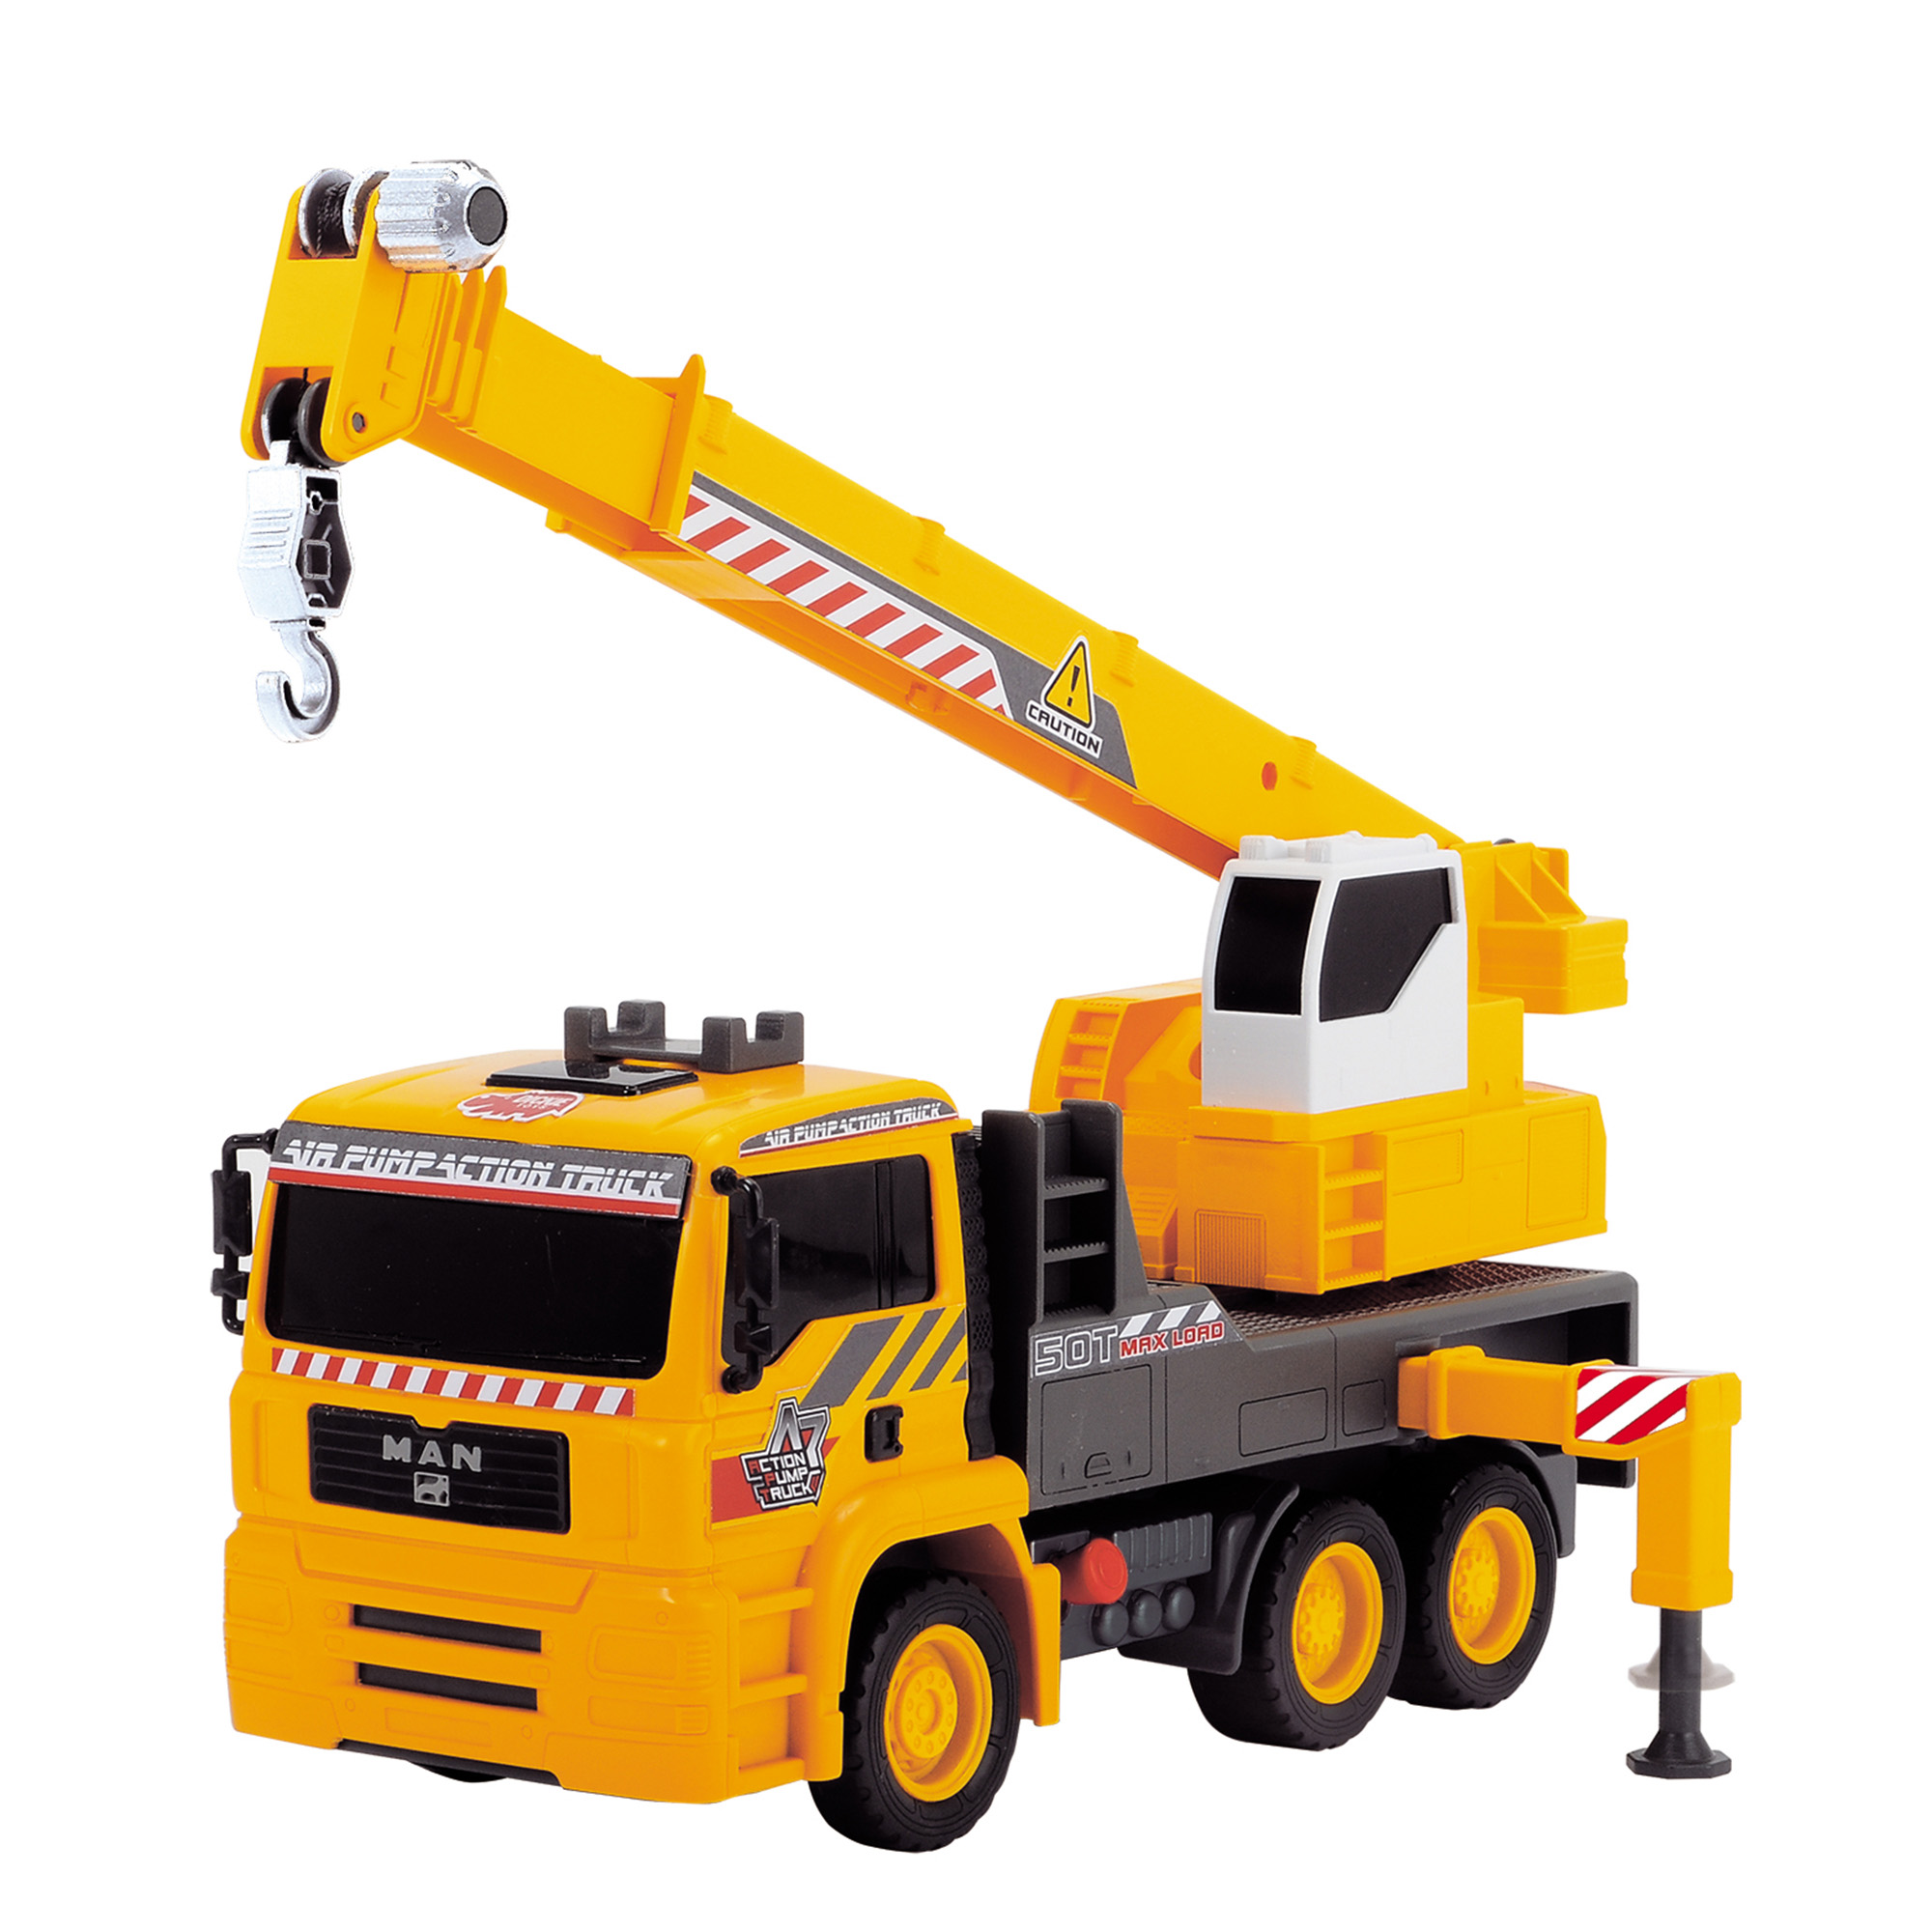 Driving Force Air Pump Mobile Crane